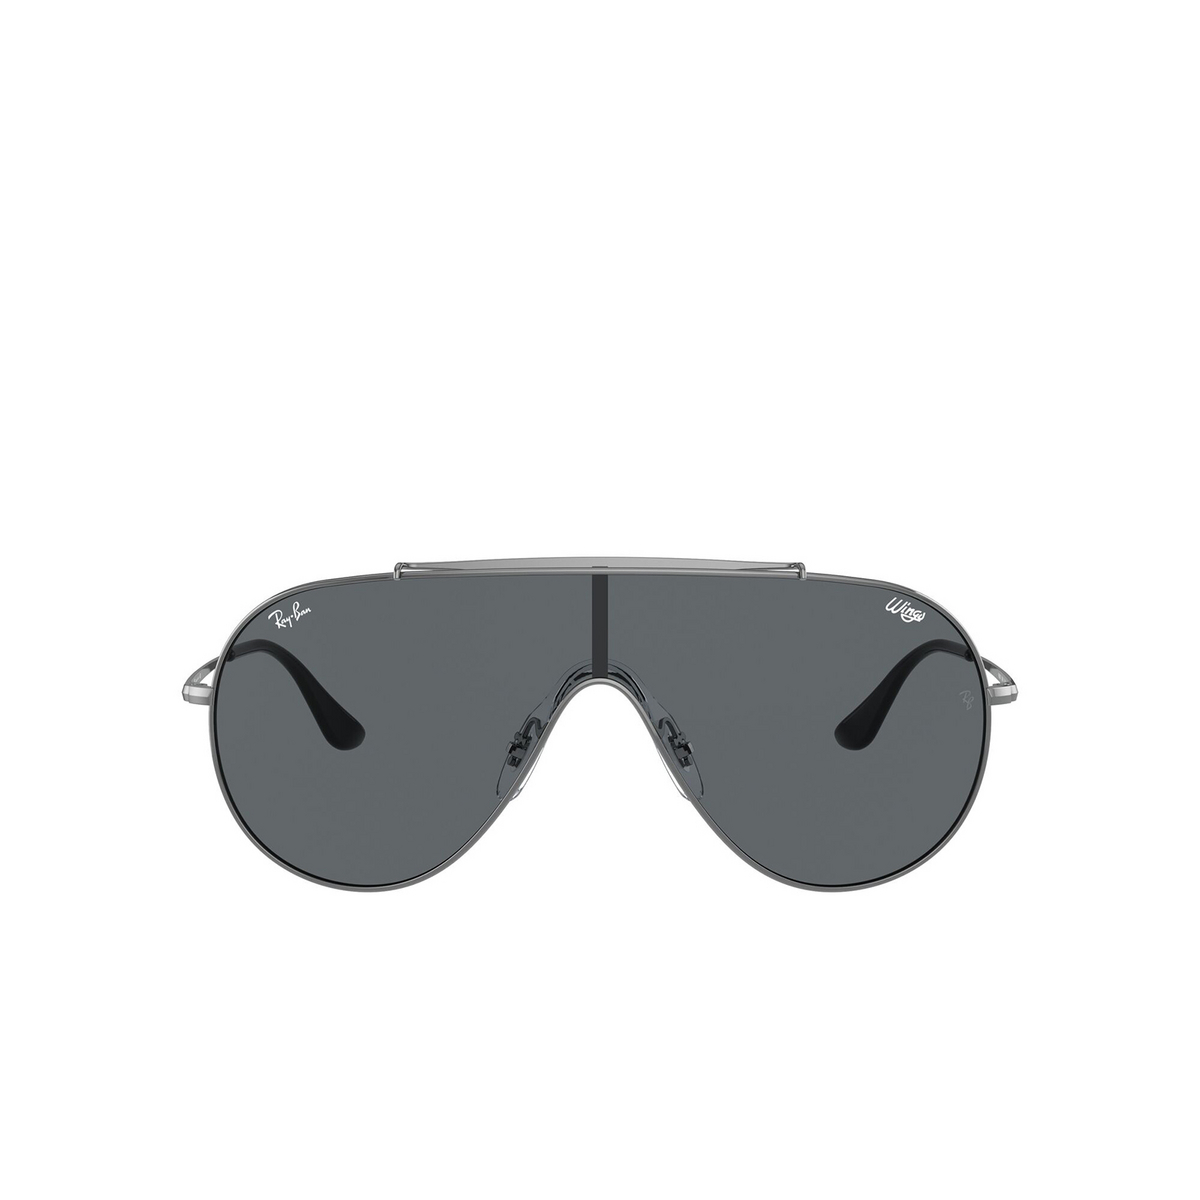 Ray-Ban® Aviator Sunglasses: Wings RB3597 color Gunmetal 004/87 - front view.